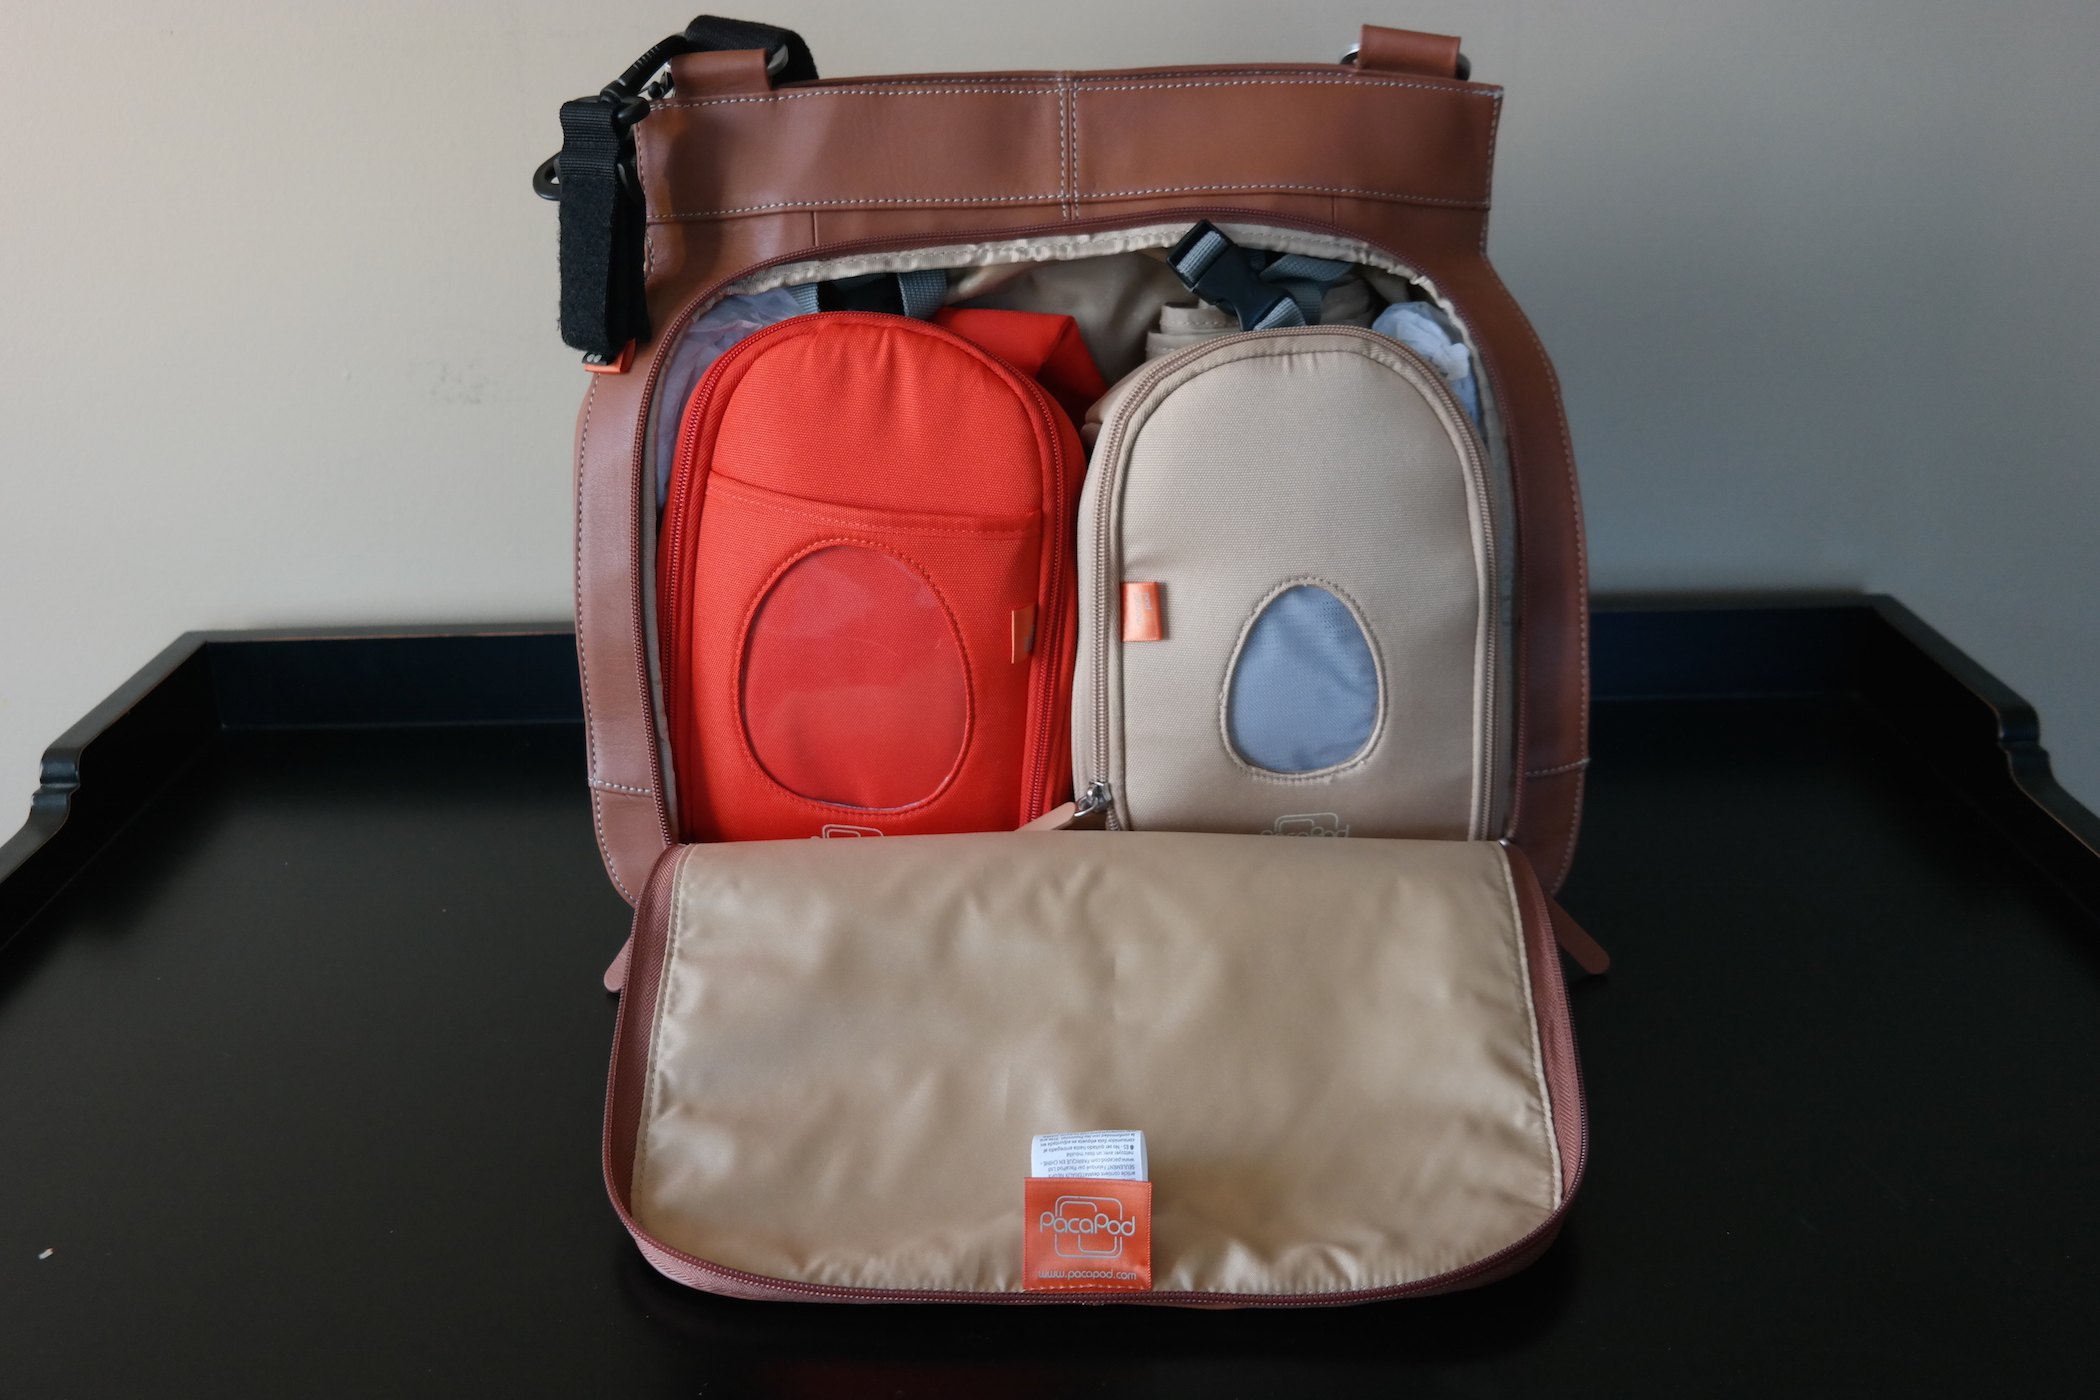 c43e8f6adca To truly assess this diaper bag and its effectiveness, I am going to take  everything out of my existing packed diaper bag and move it in to the new  PacaPod.